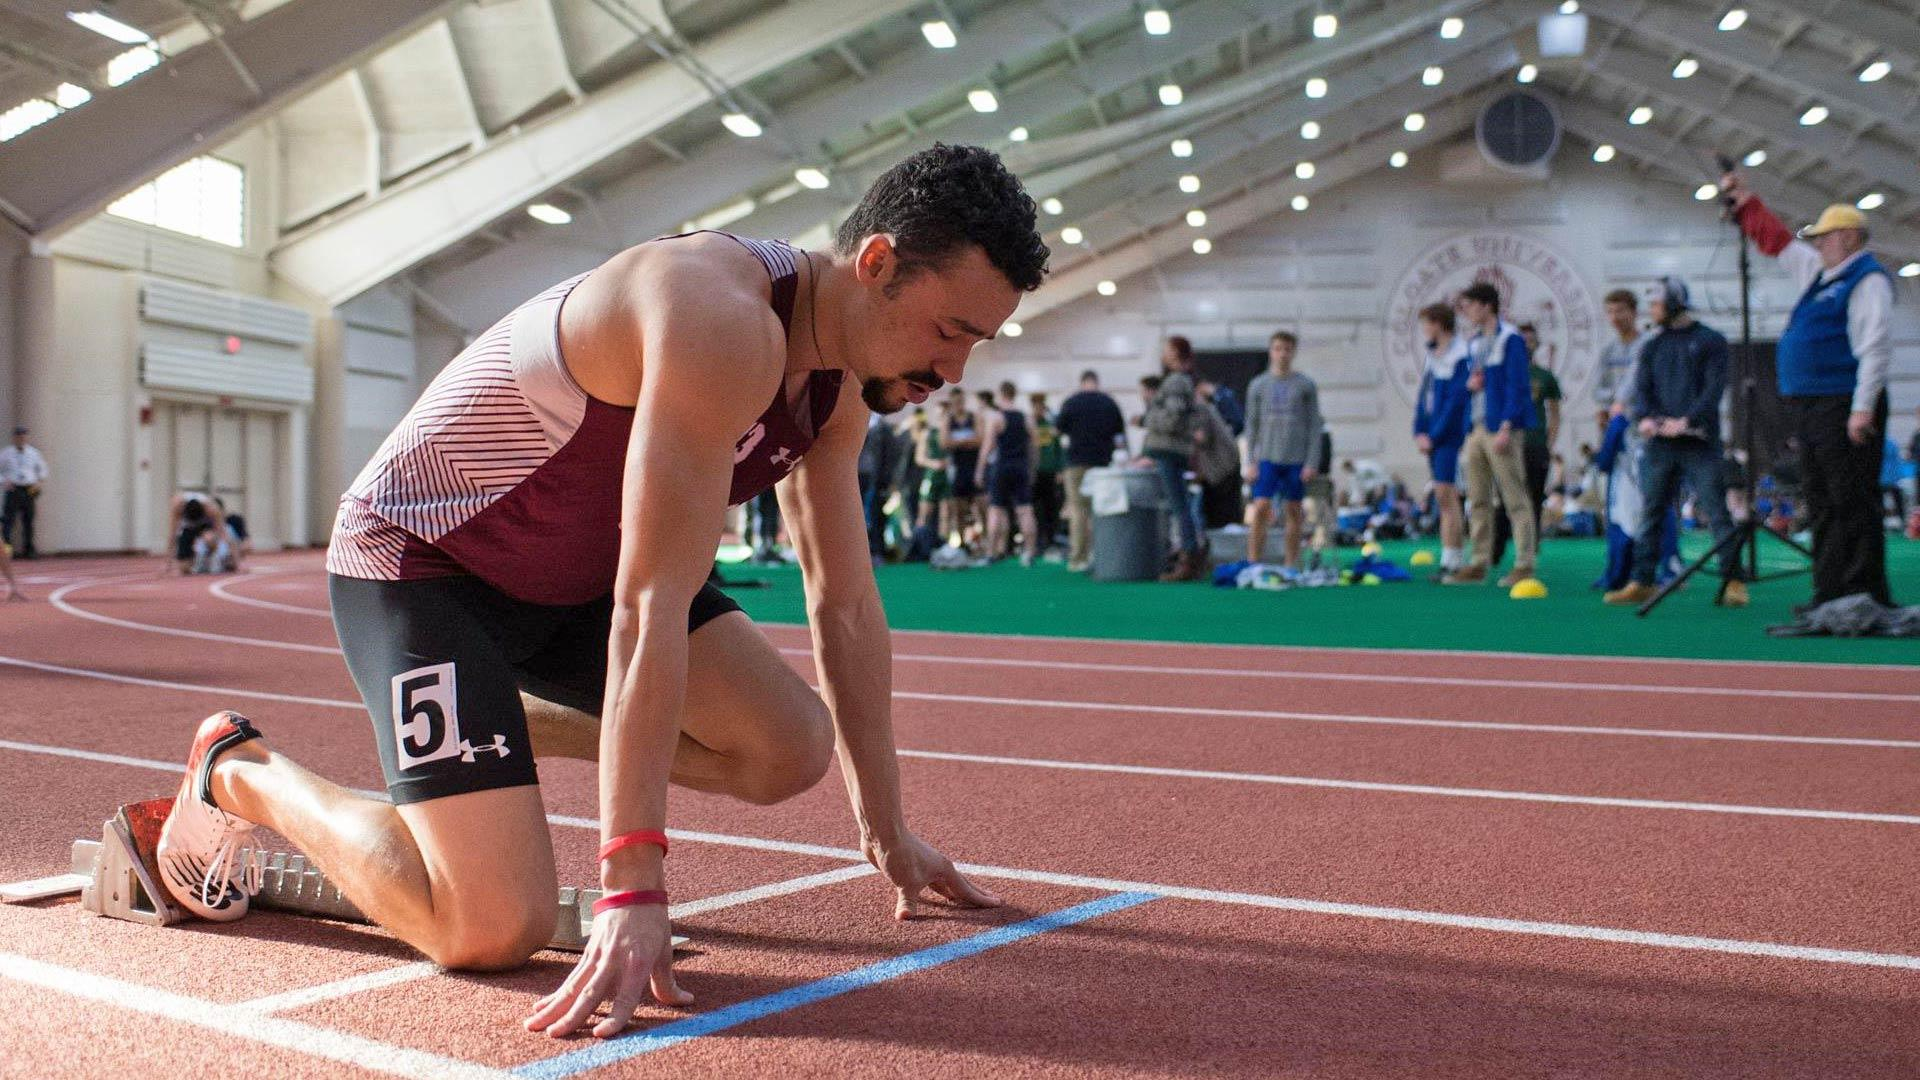 Oliver Moe at the starting block for a race in Colgate's Sanford Field House